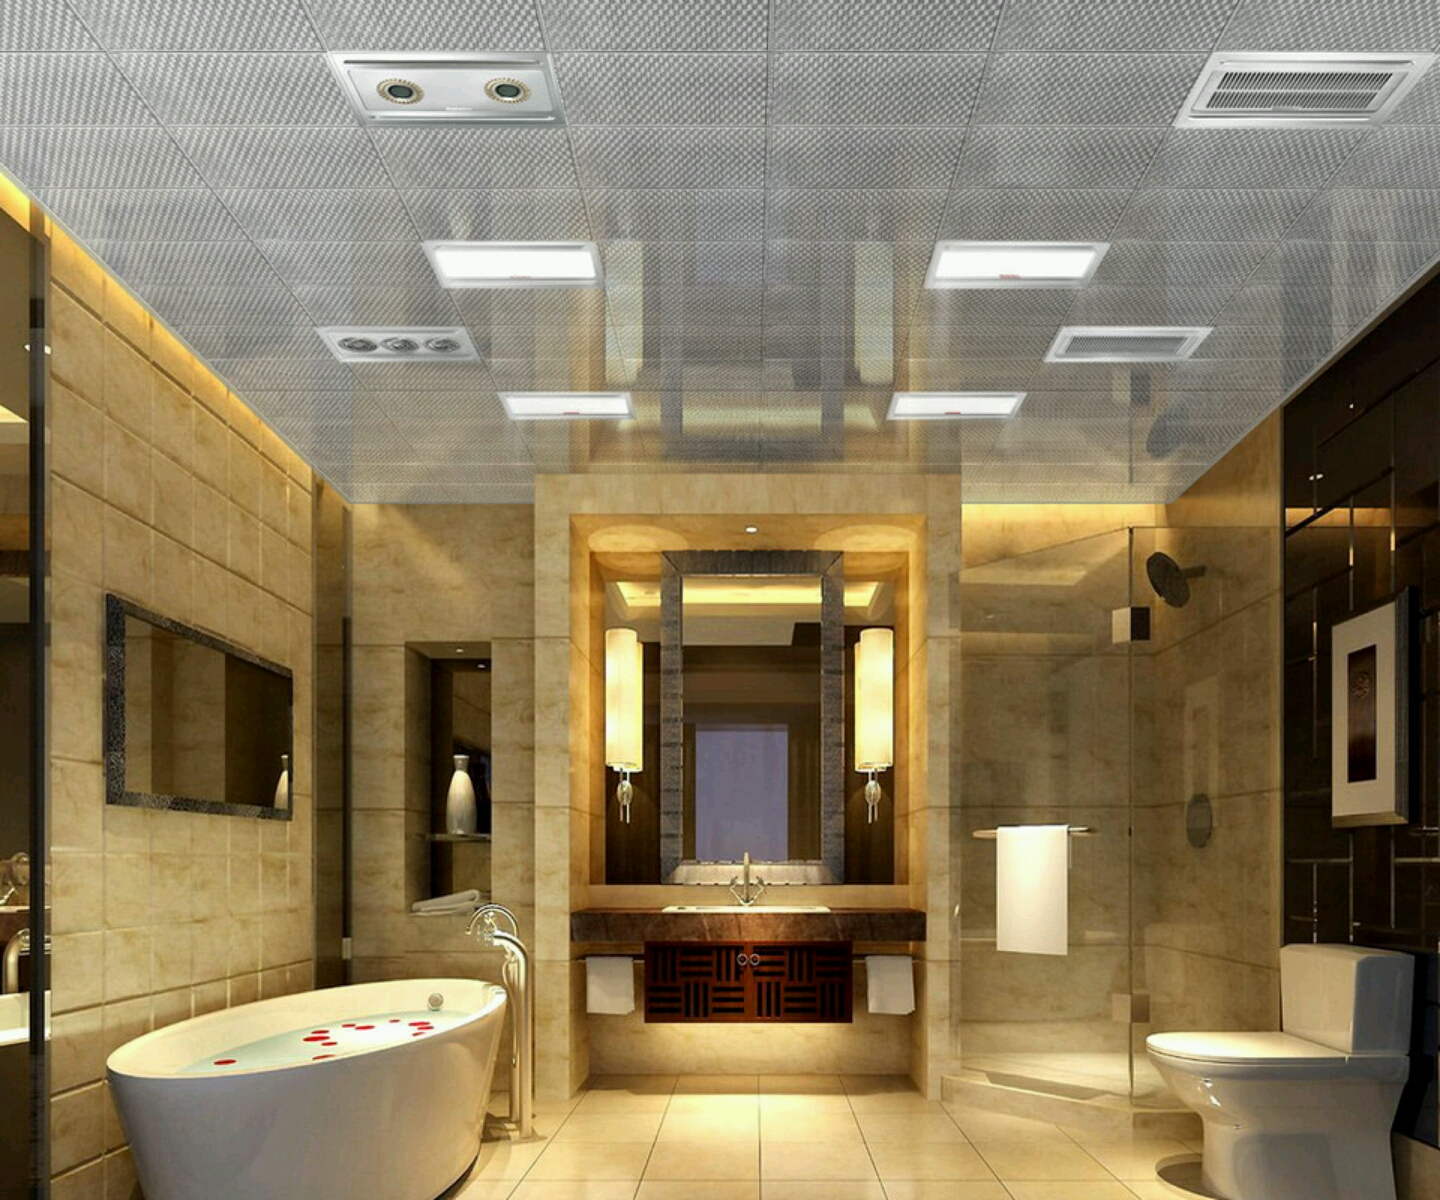 30 beautiful pictures and ideas high end bathroom tile designs for New bathroom design ideas